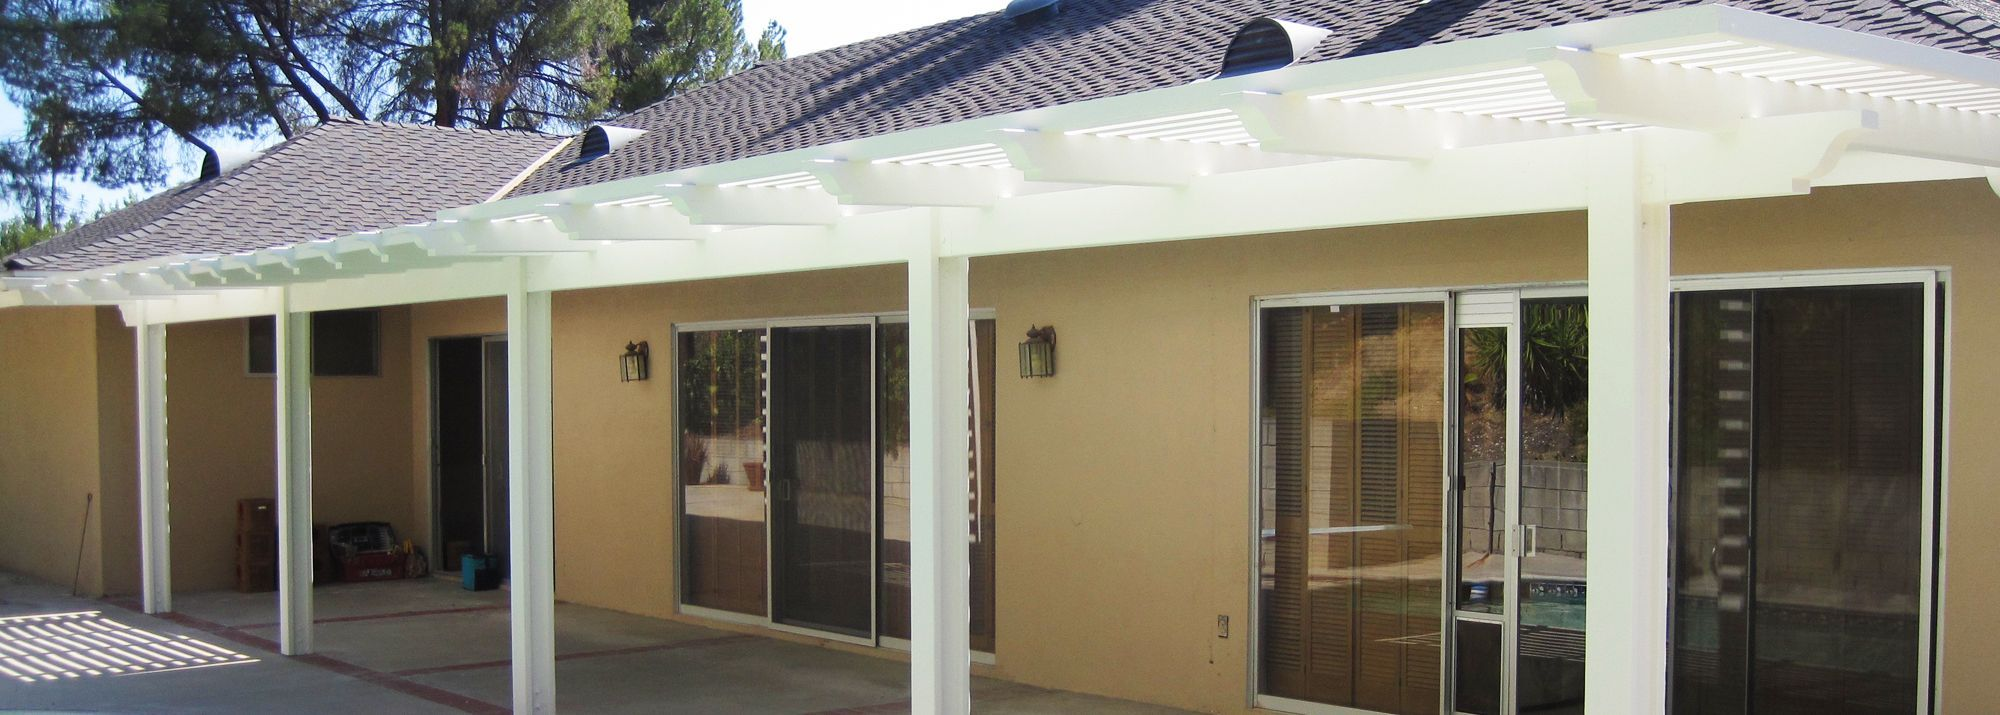 M1 Patio Cover